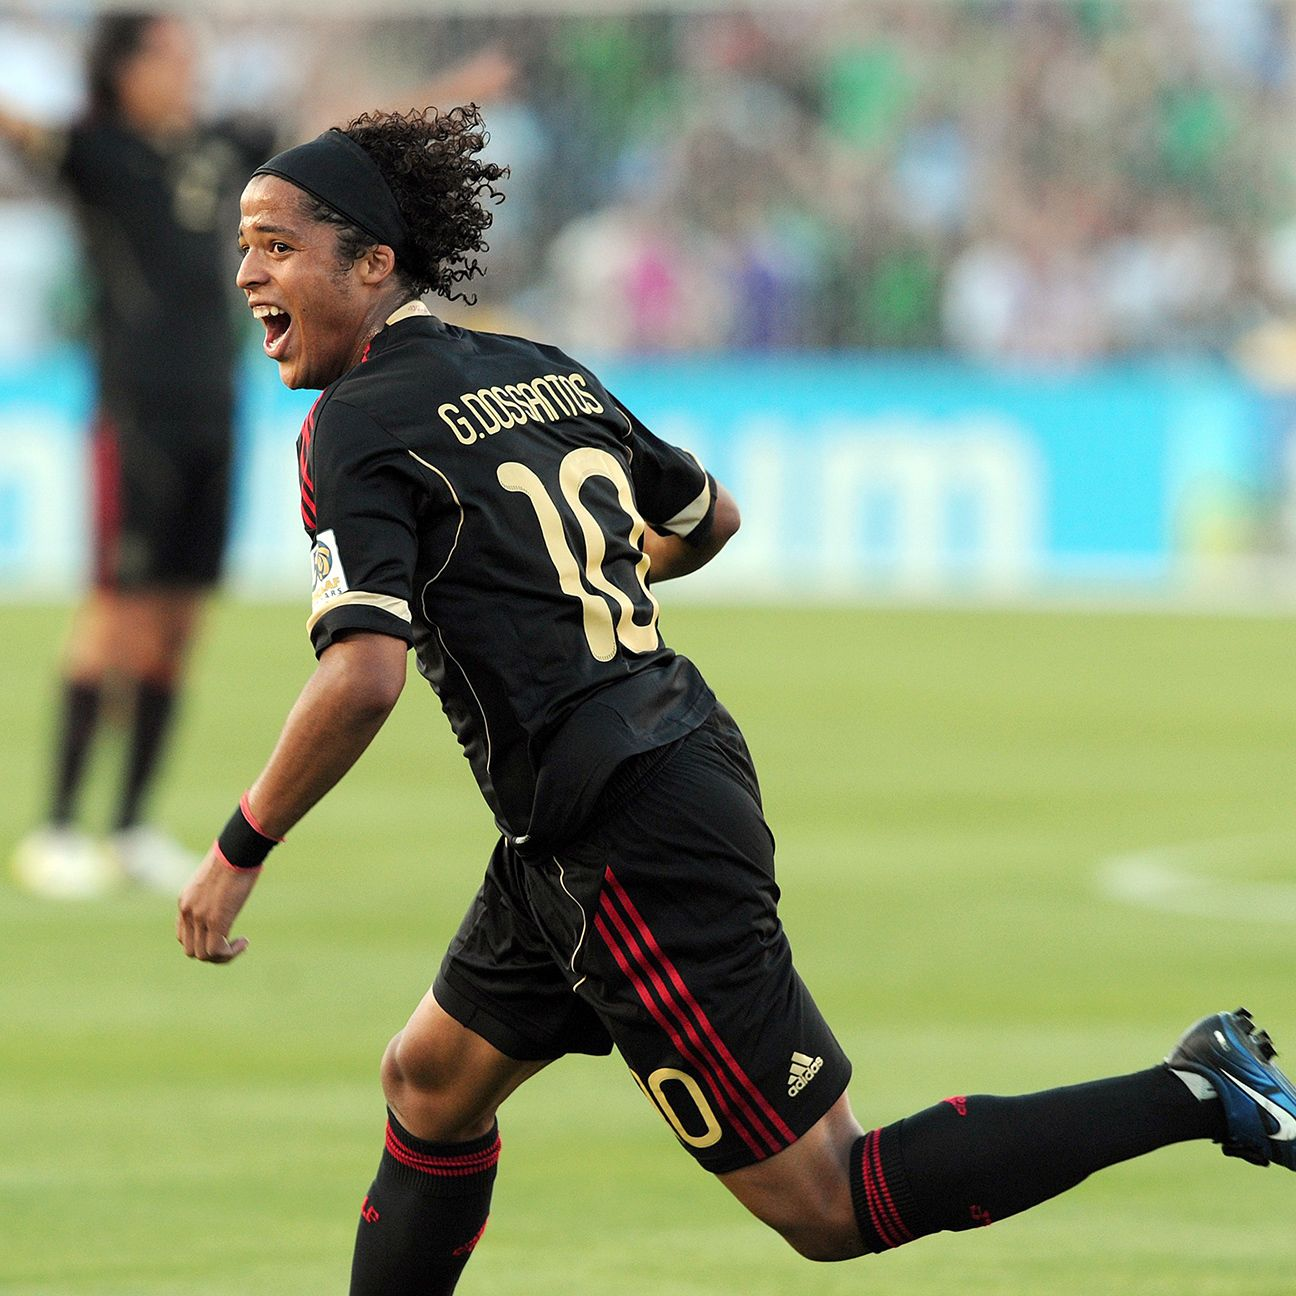 With Giovani dos Santos excluded from Mexico's roster for September's friendlies, it's doubtful fans of <i>El Tri</i> will see a repeat of his wondergoal against the U.S. in the 2011 Gold Cup final at the Rose Bowl.